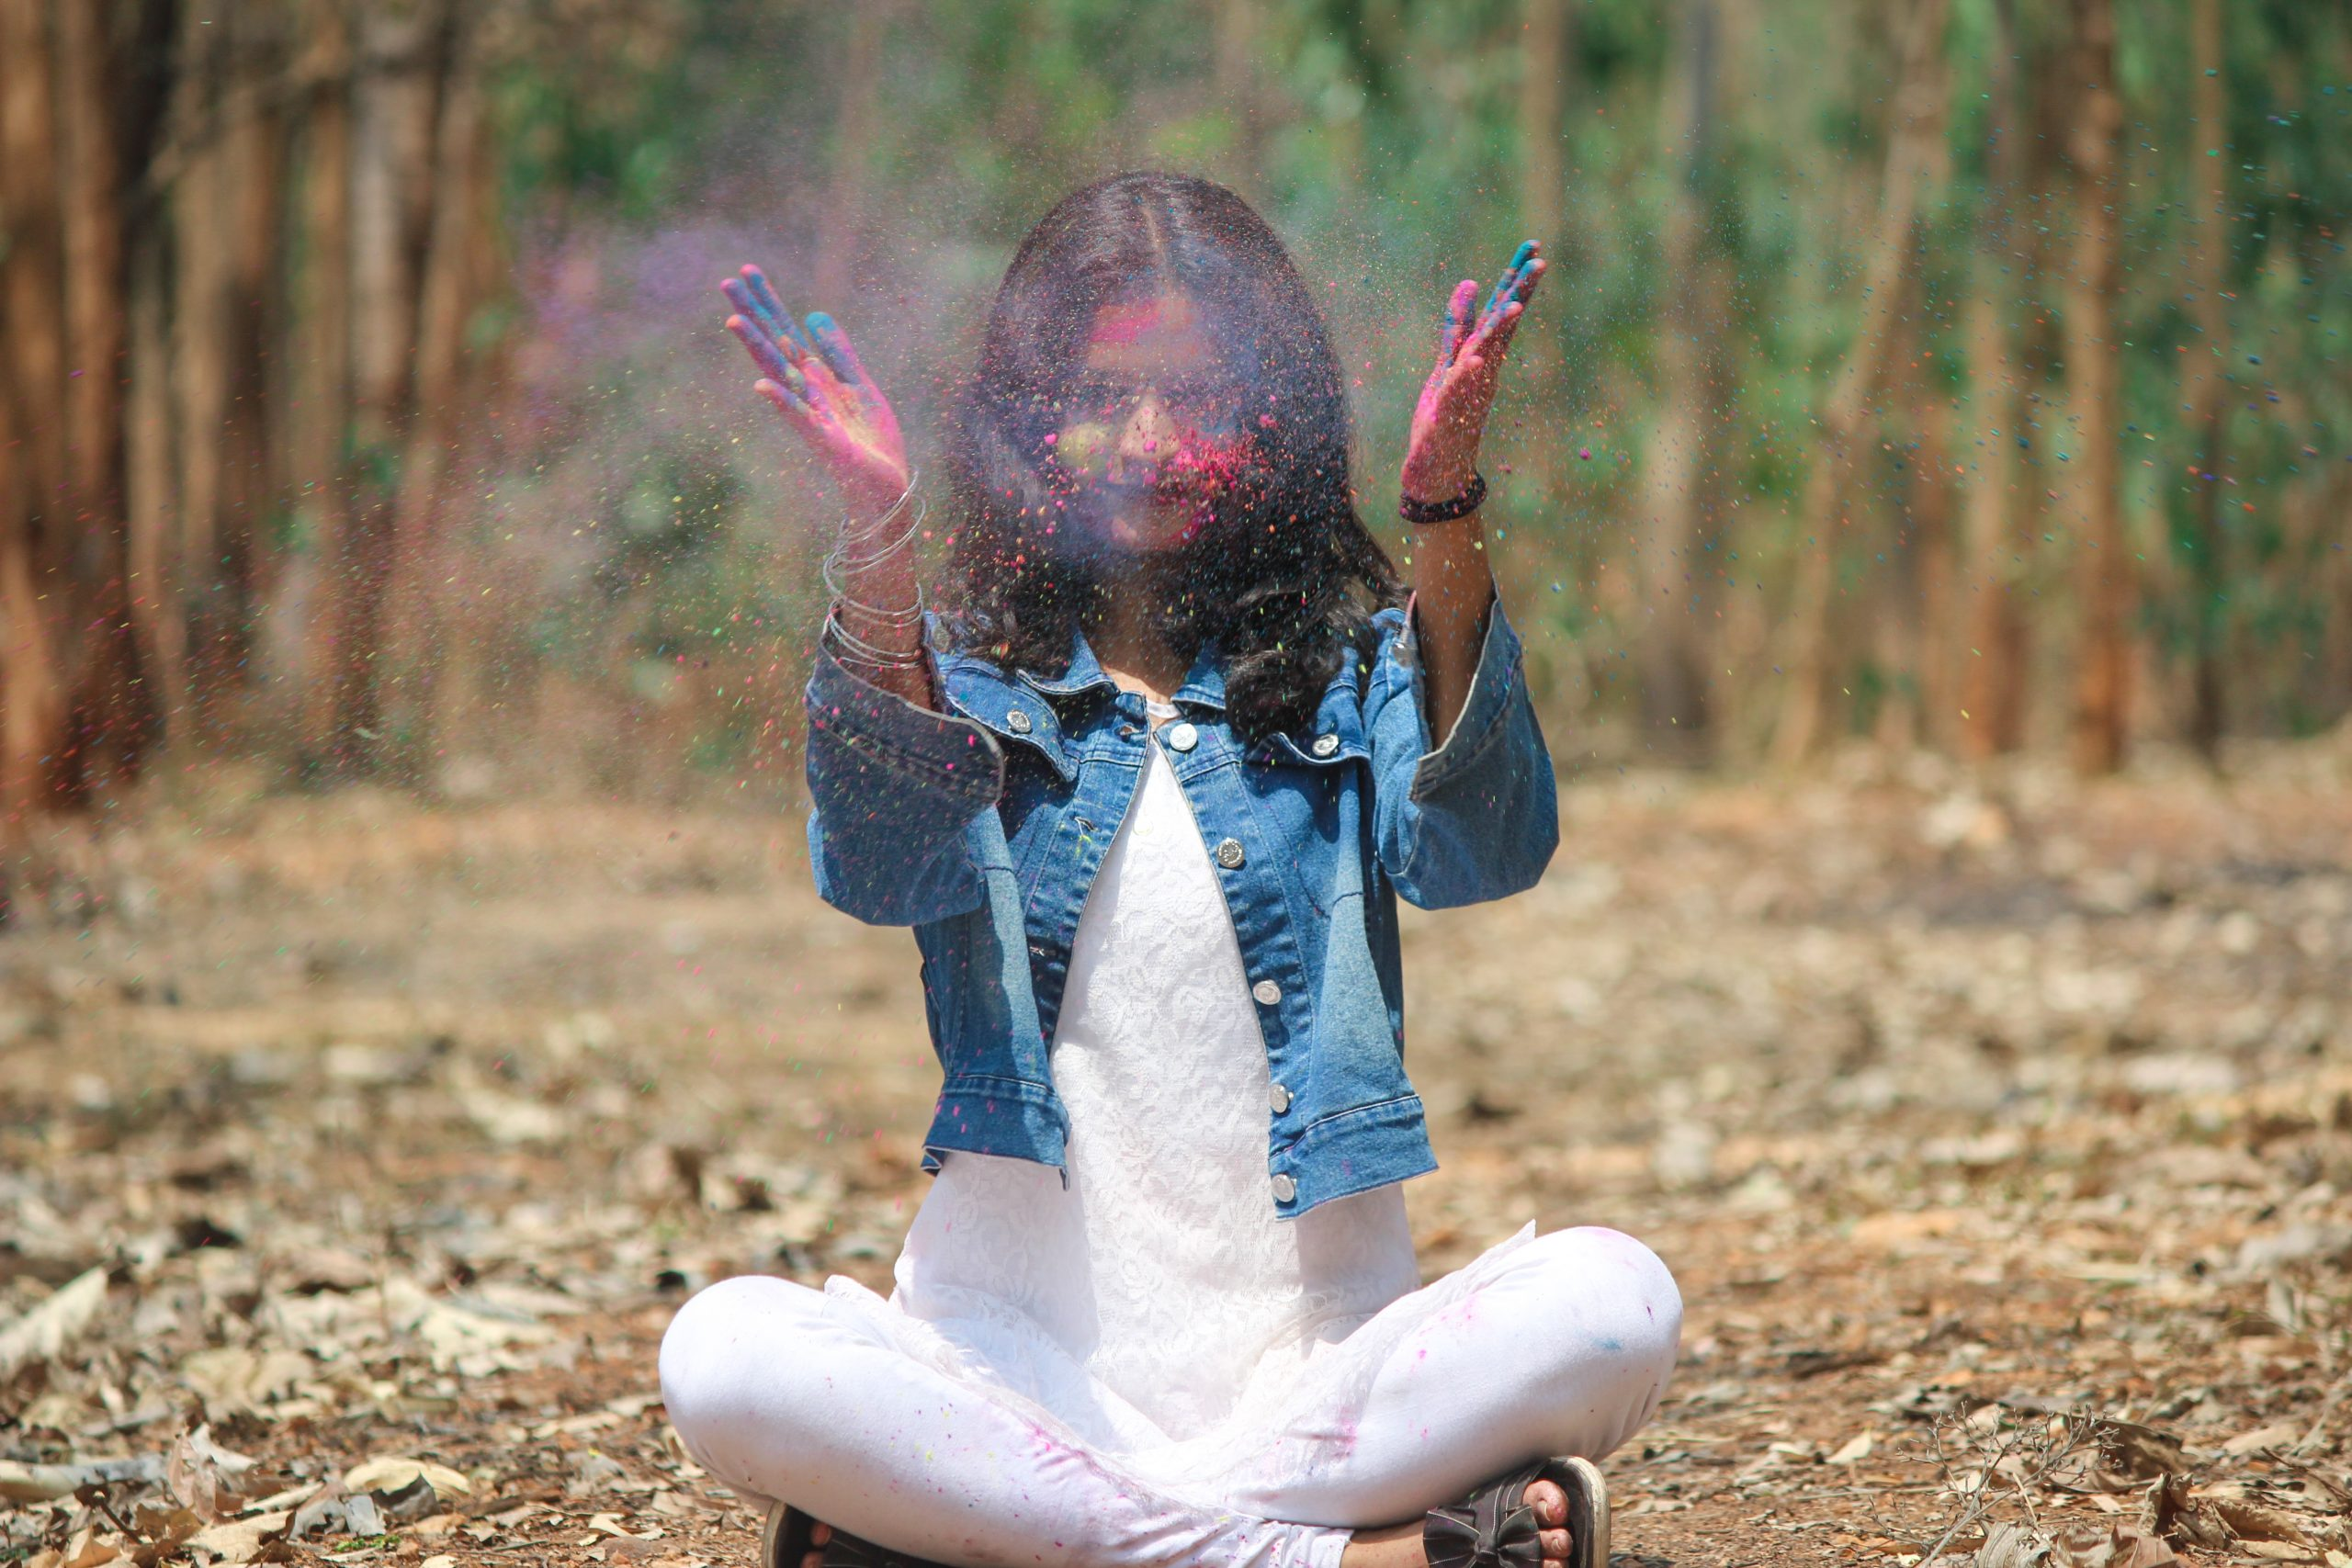 A girl in a jungle playing with Holi colors